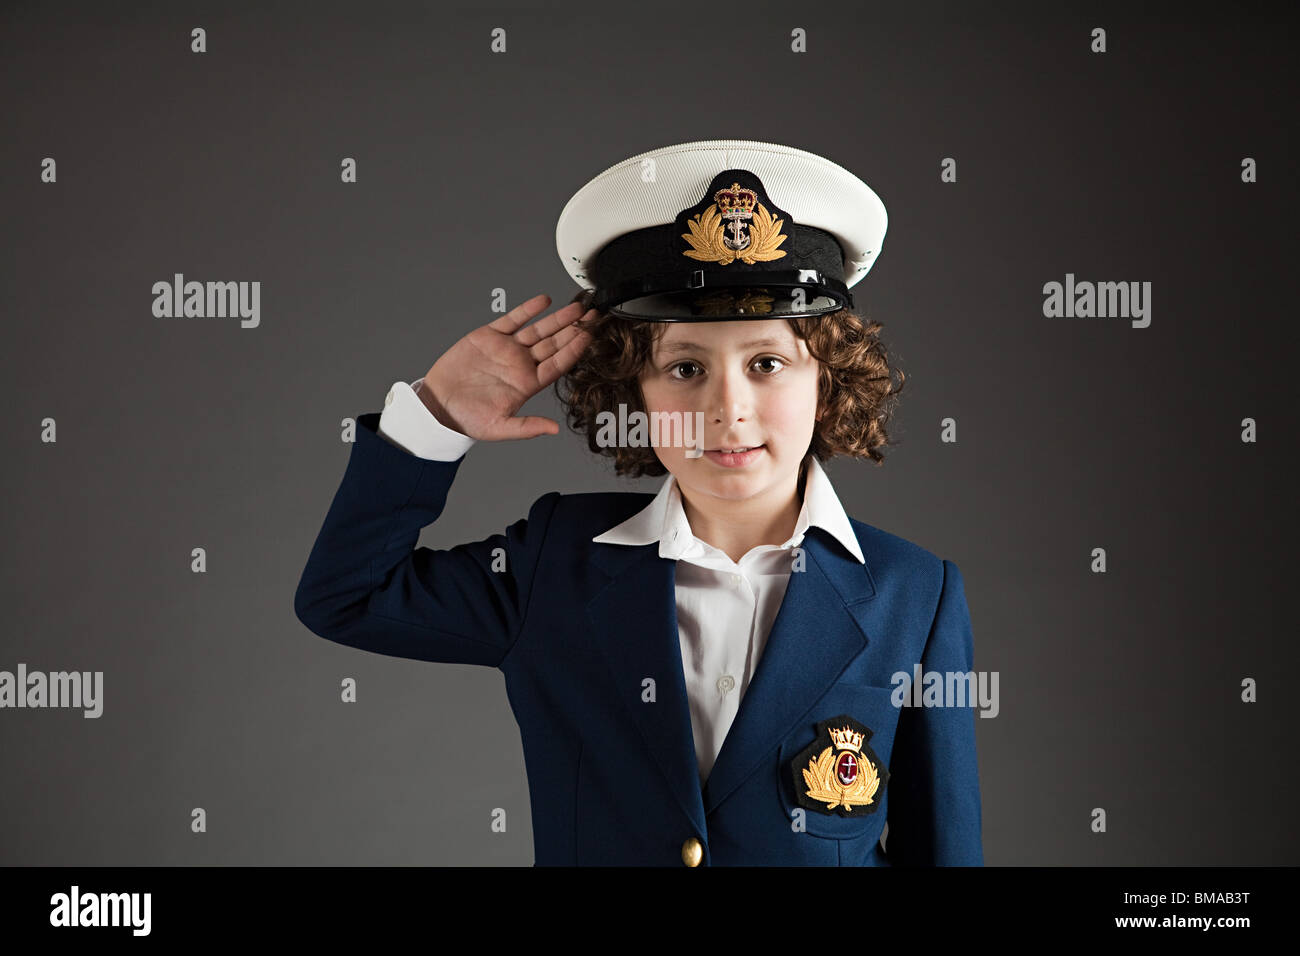 Young boy dressed up in sailor outfit, saluting - Stock Image